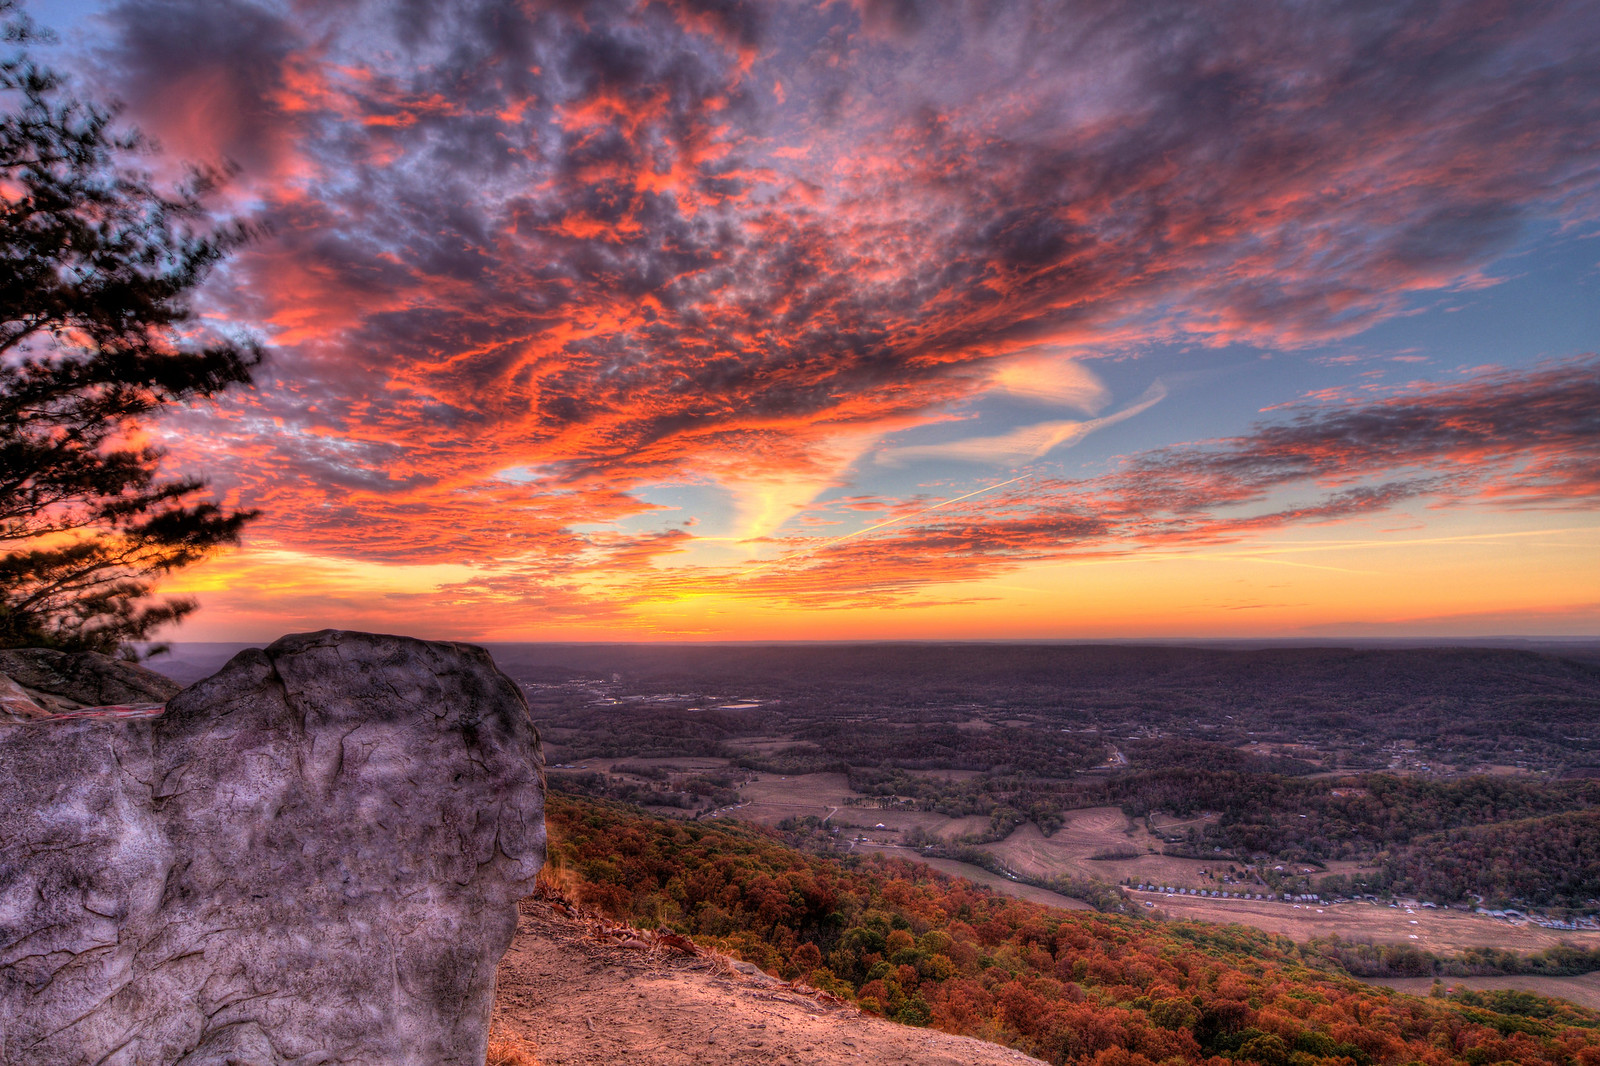 Sunset on Lookout Mountain, GA